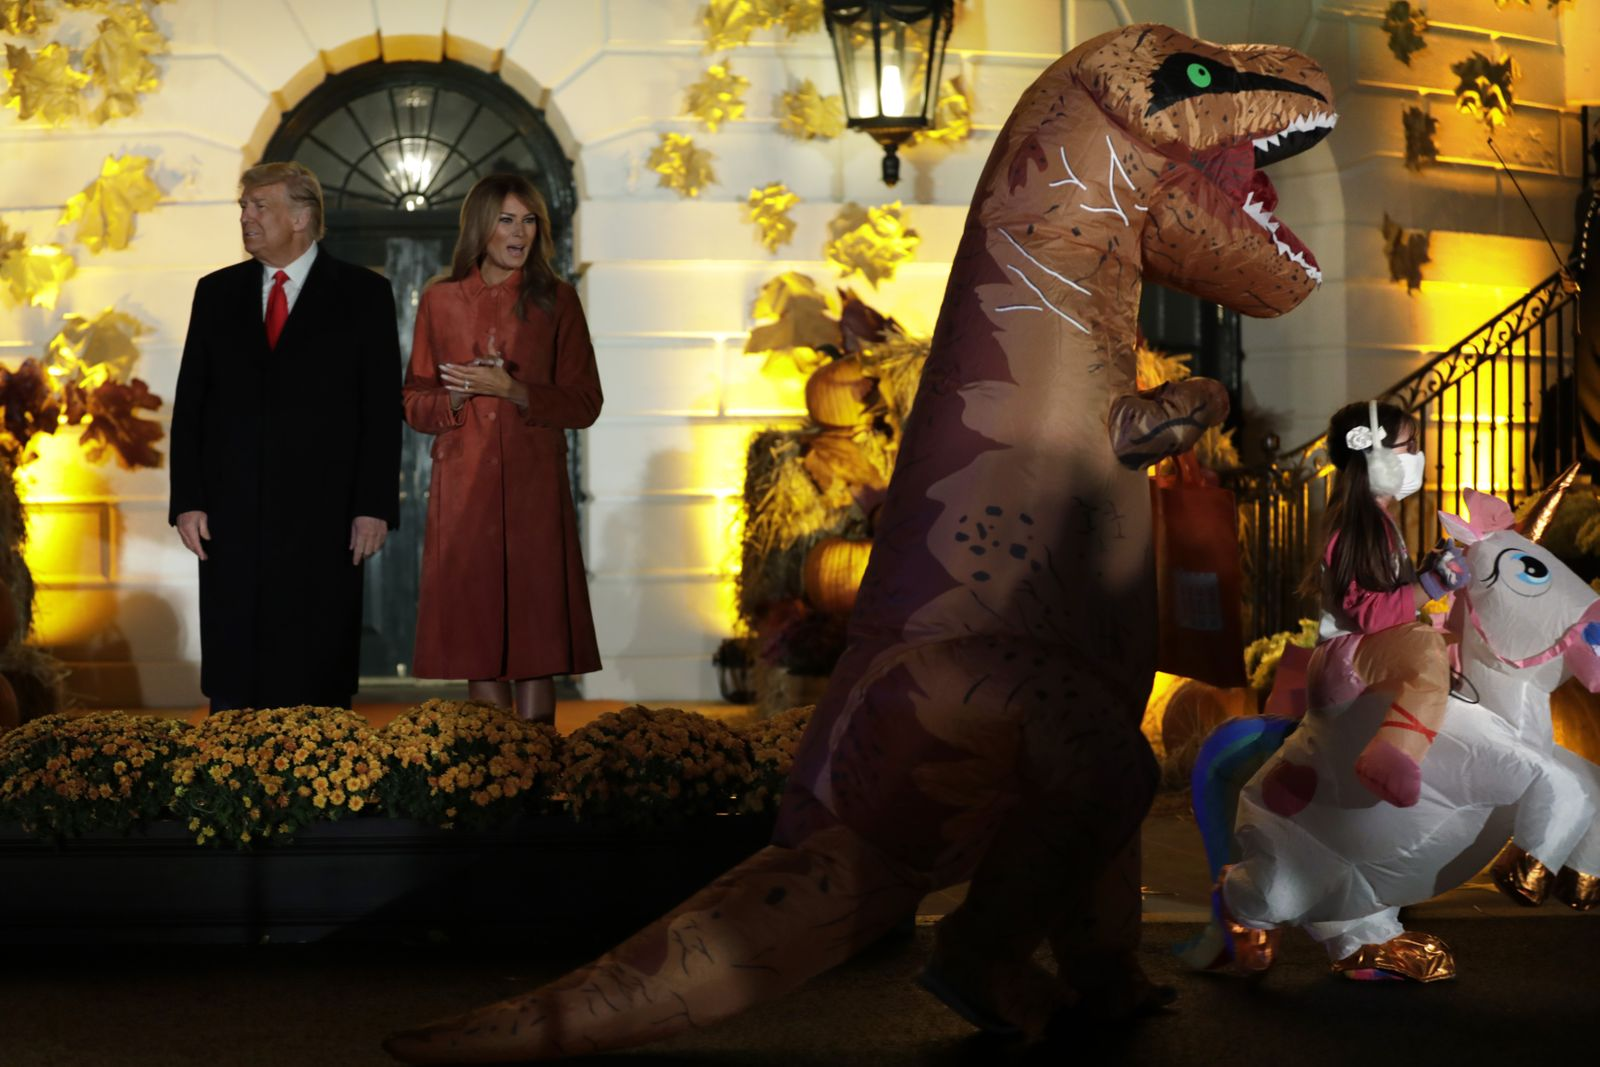 US President Trump hosts a Halloween event at the White House, Washington, USA - 25 Oct 2020